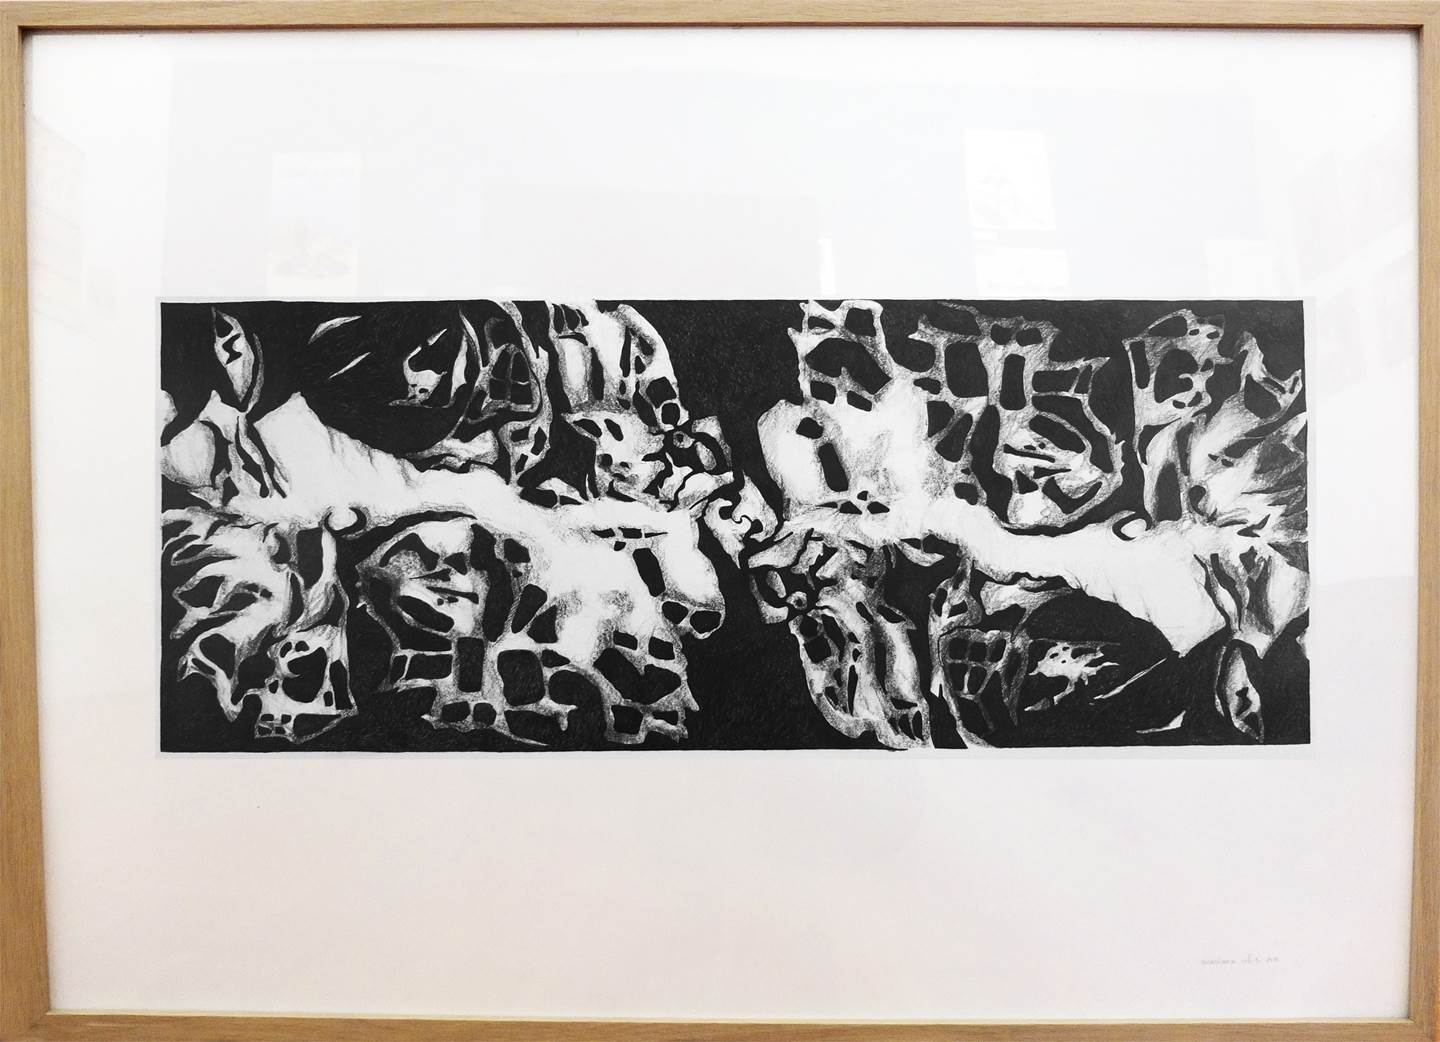 Rocha#2, original Abstract Charcoal Drawing and Illustration by Mariana Alves